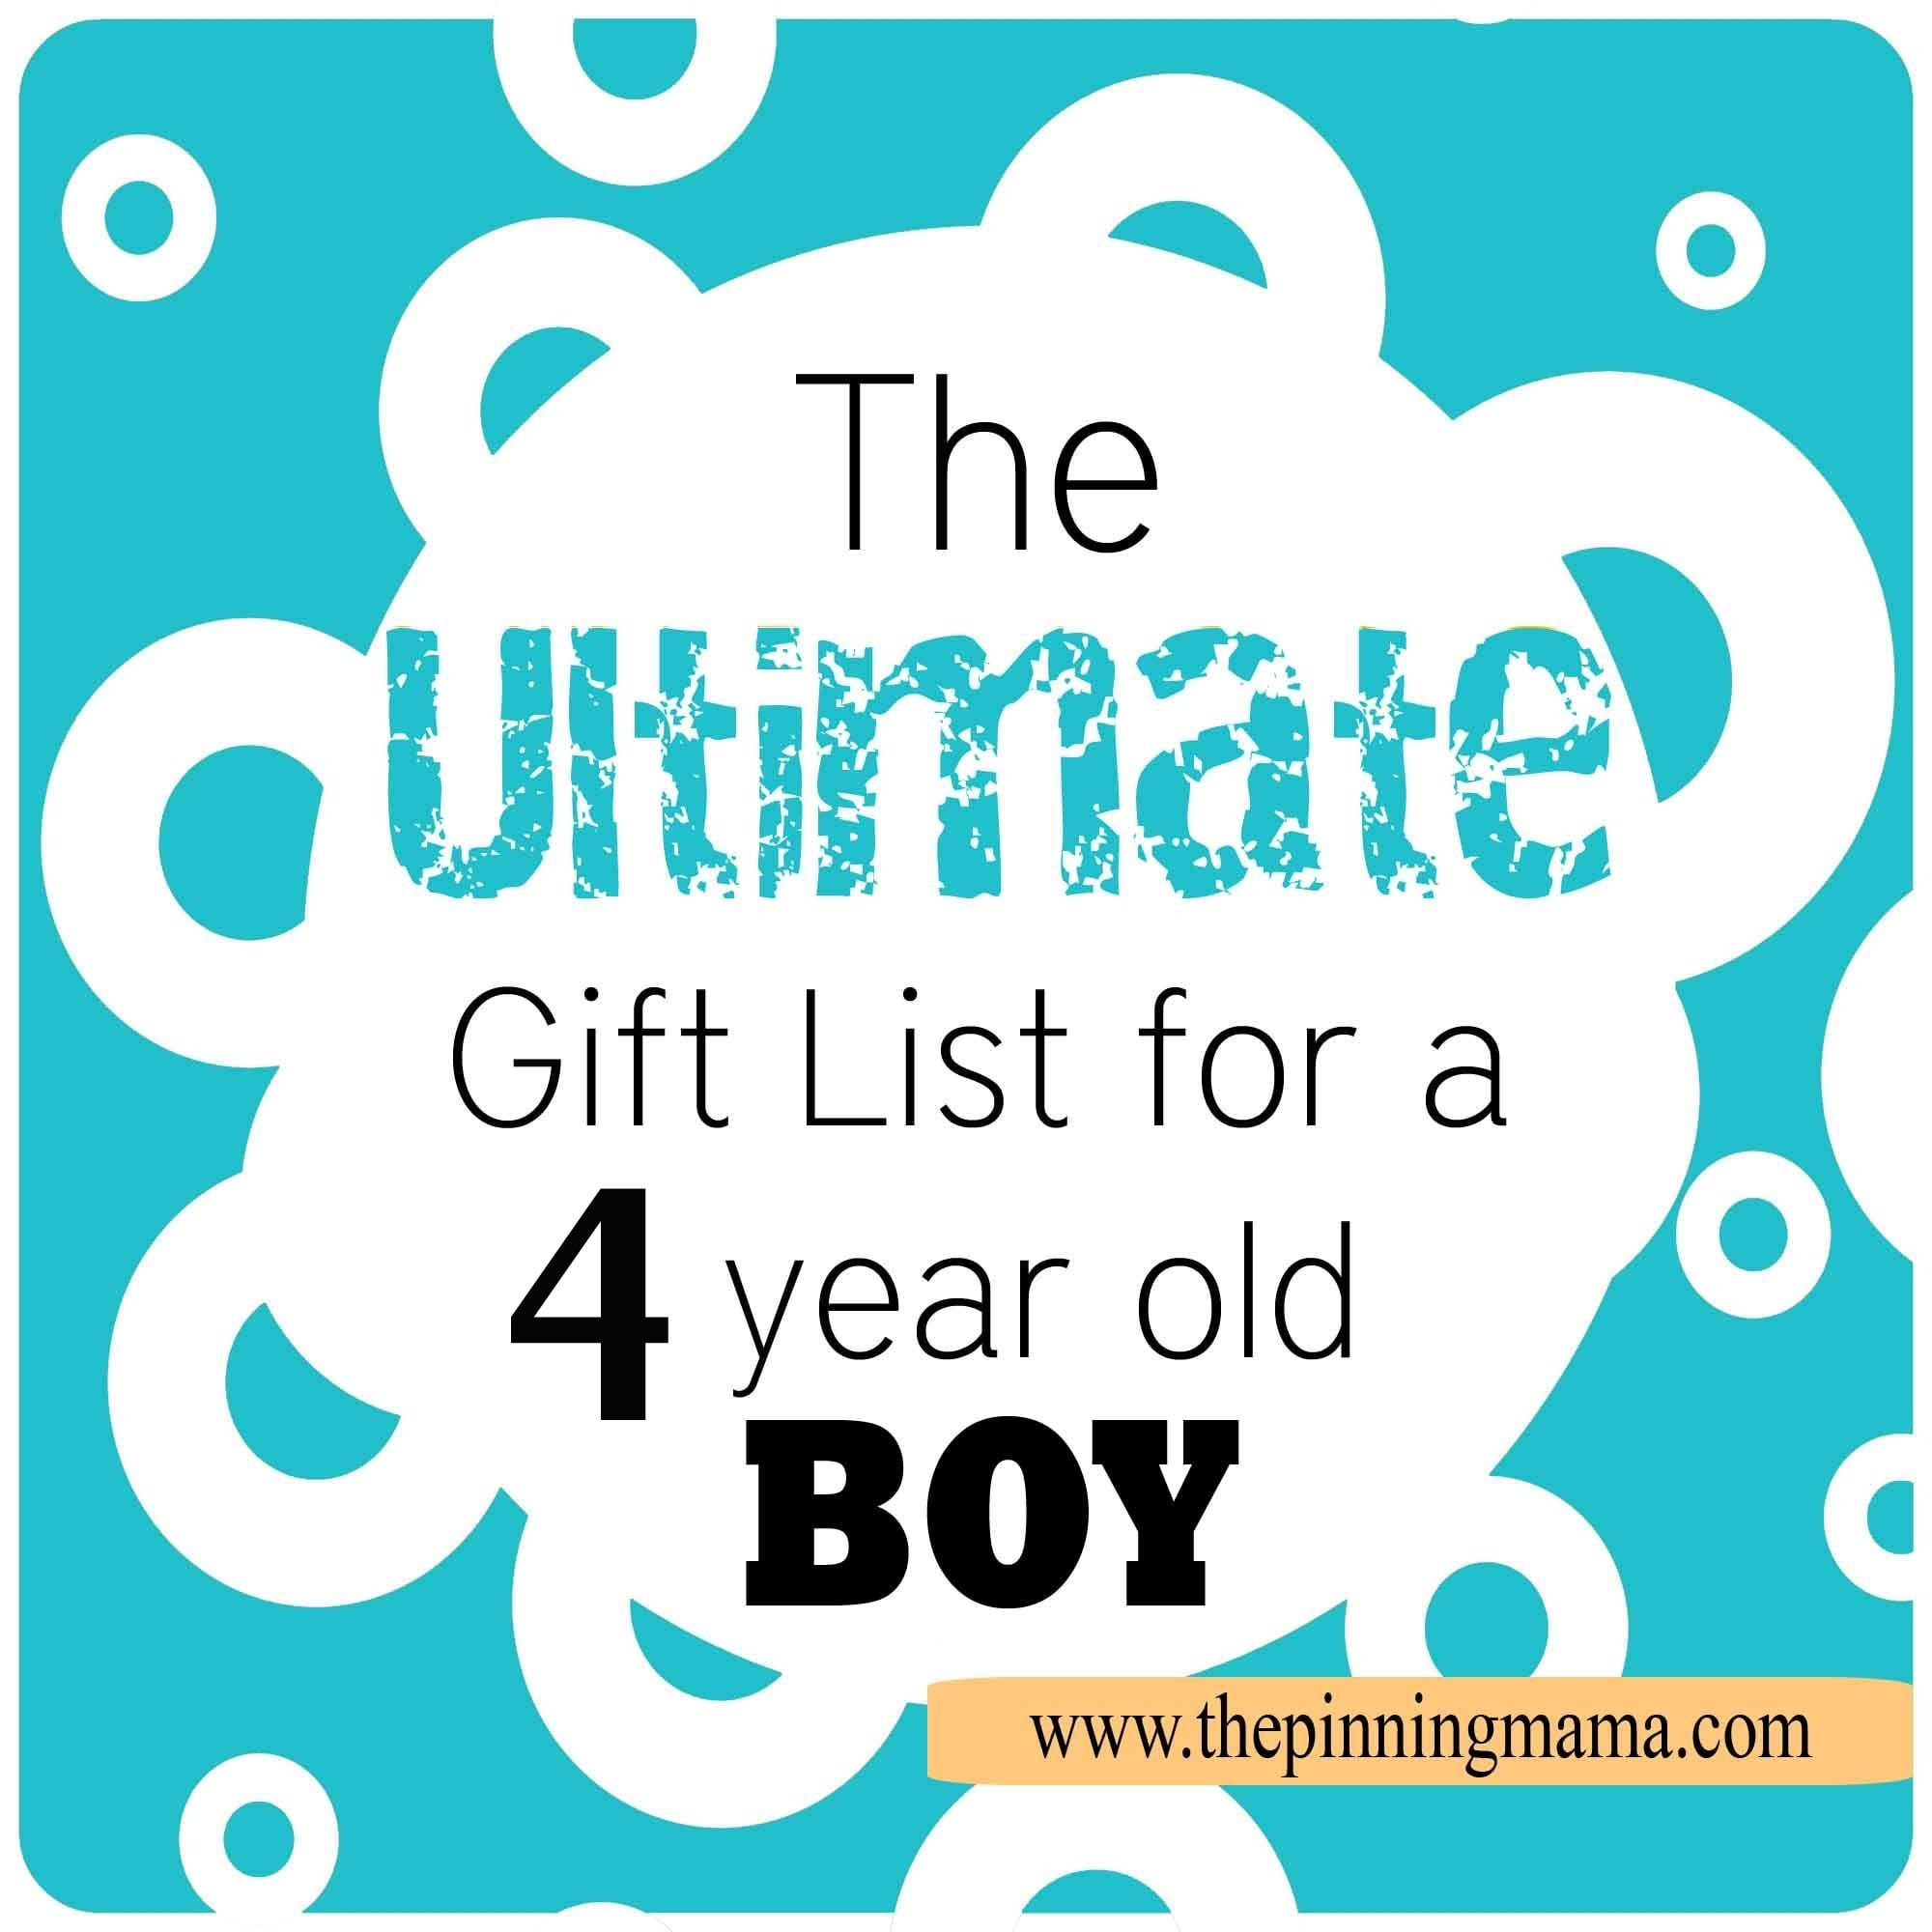 10 Trendy 4 Year Old Boy Gift Ideas the best list of gift ideas for a 4 year old boy e280a2 the pinning mama 3 2020